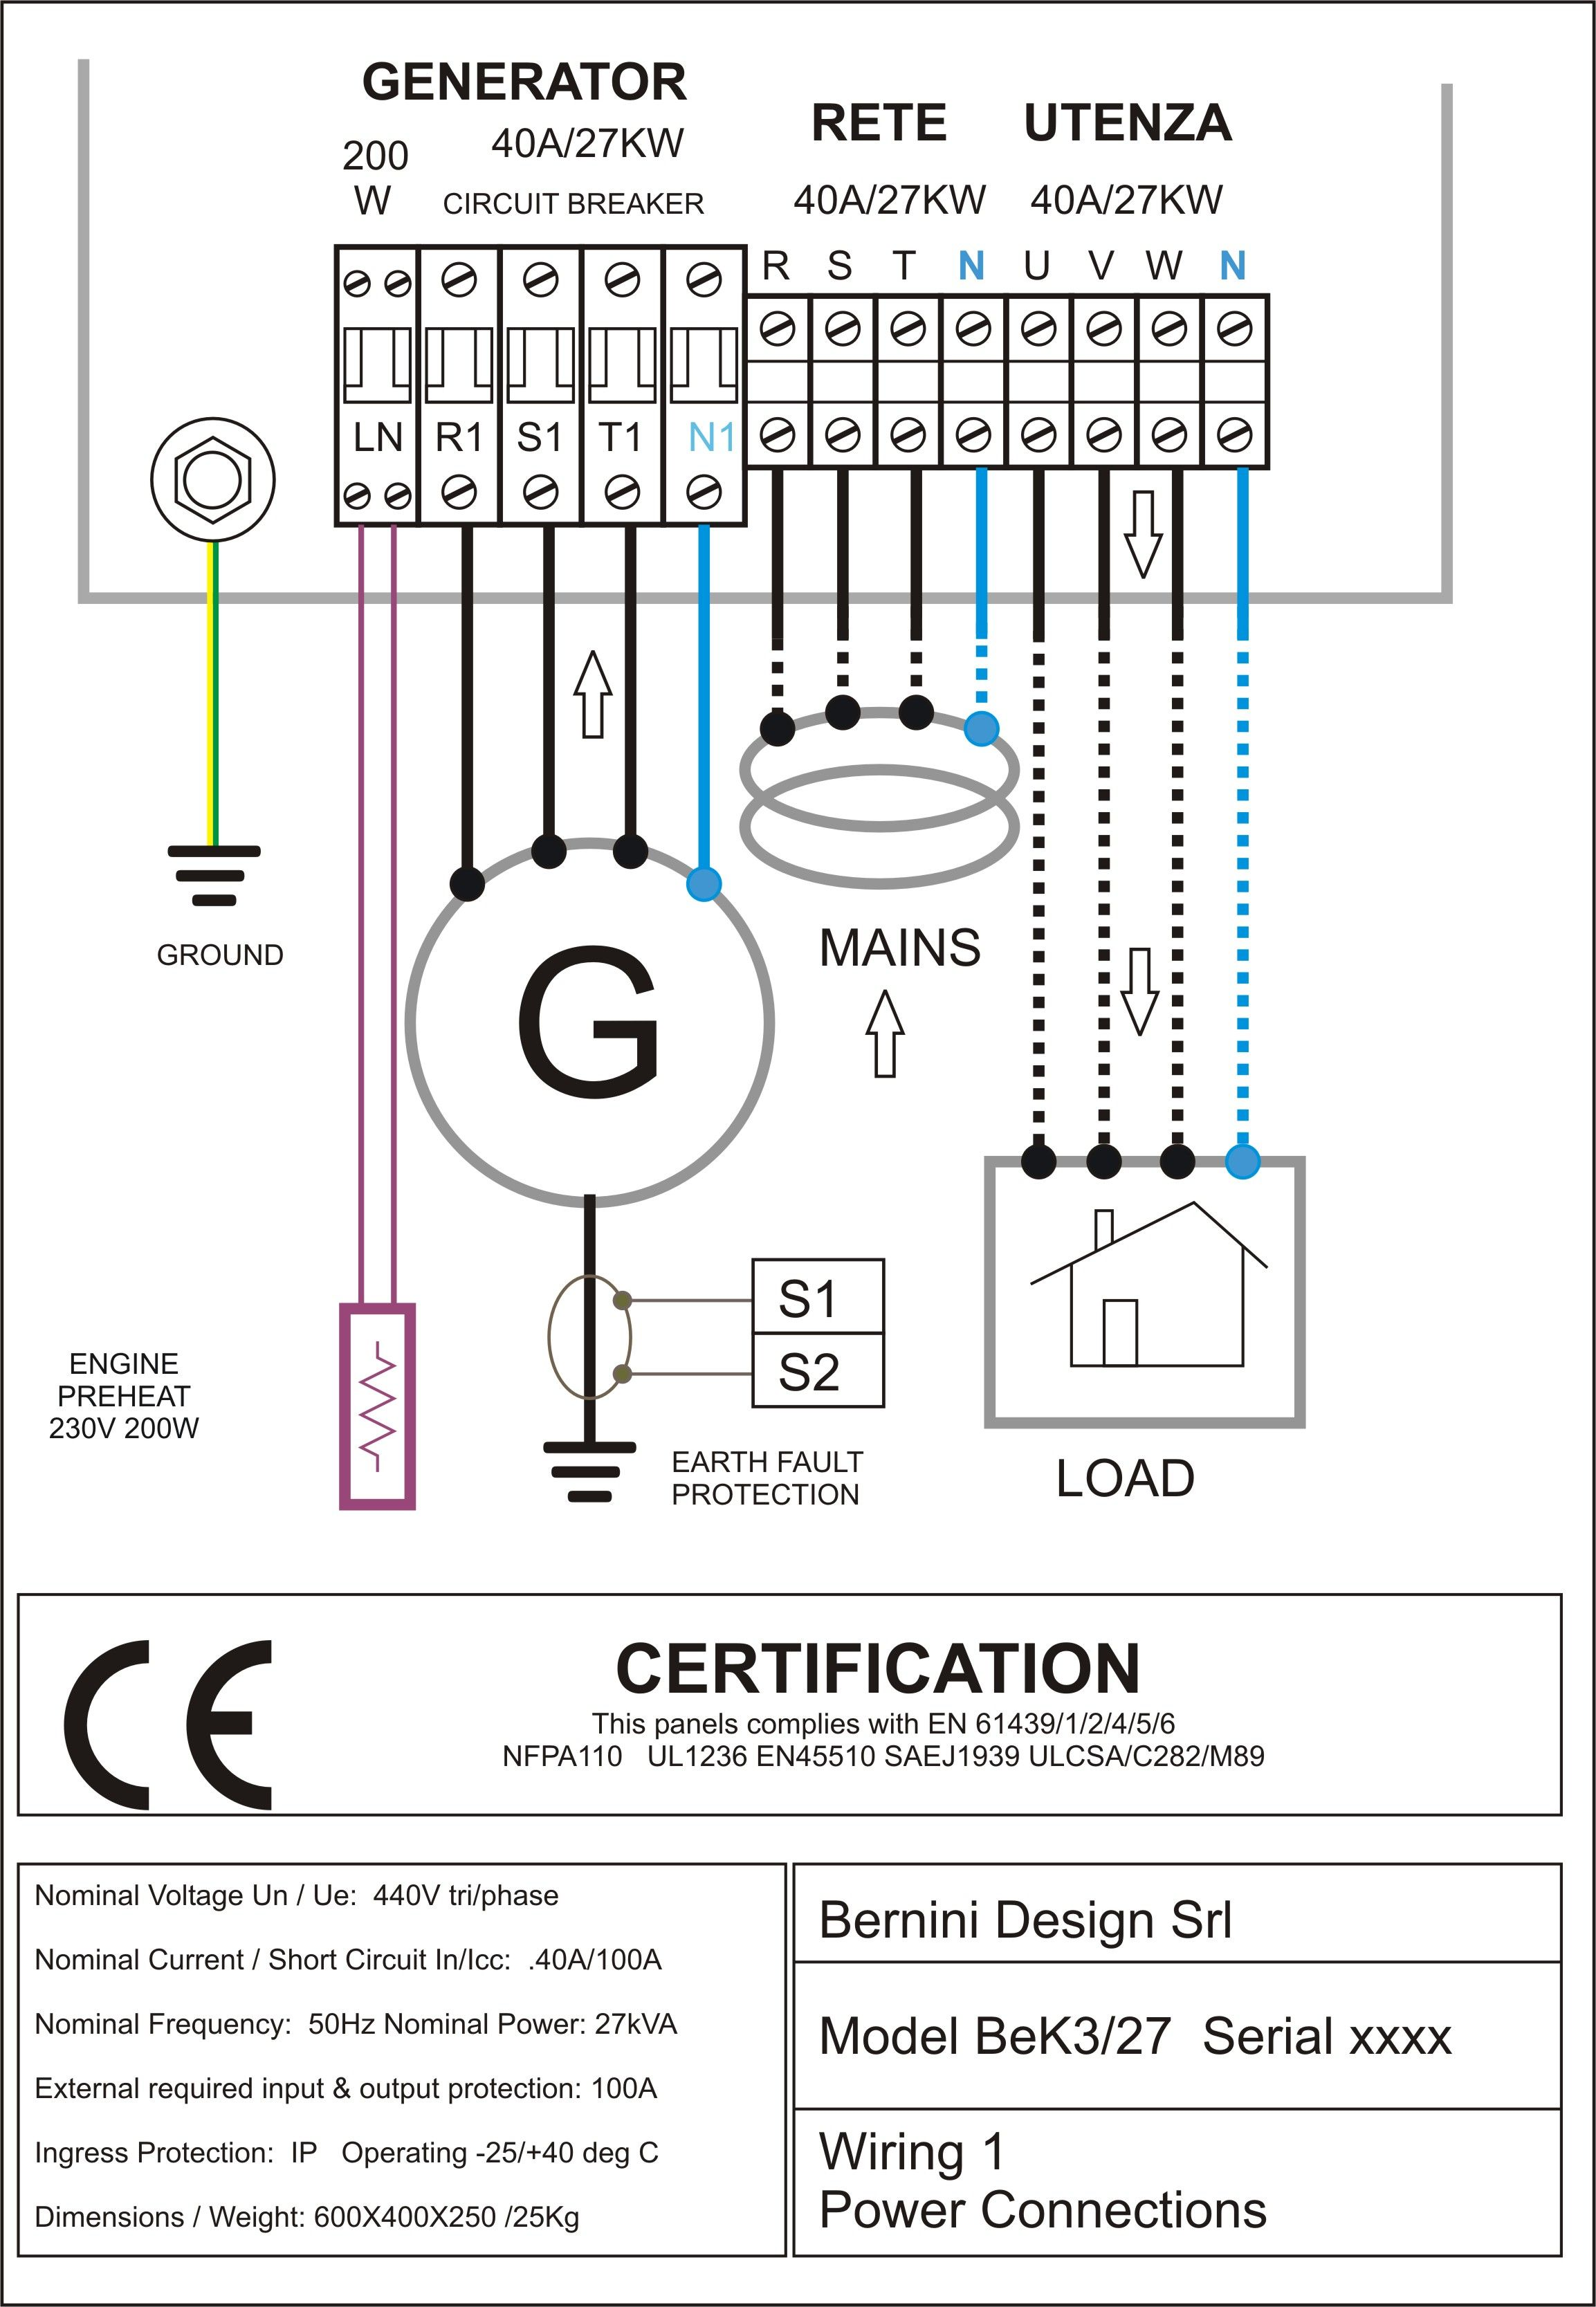 e789bca93f9142d48250ddc66668a81d diesel generator control panel wiring diagram ac connections gr generator wiring diagrams at alyssarenee.co